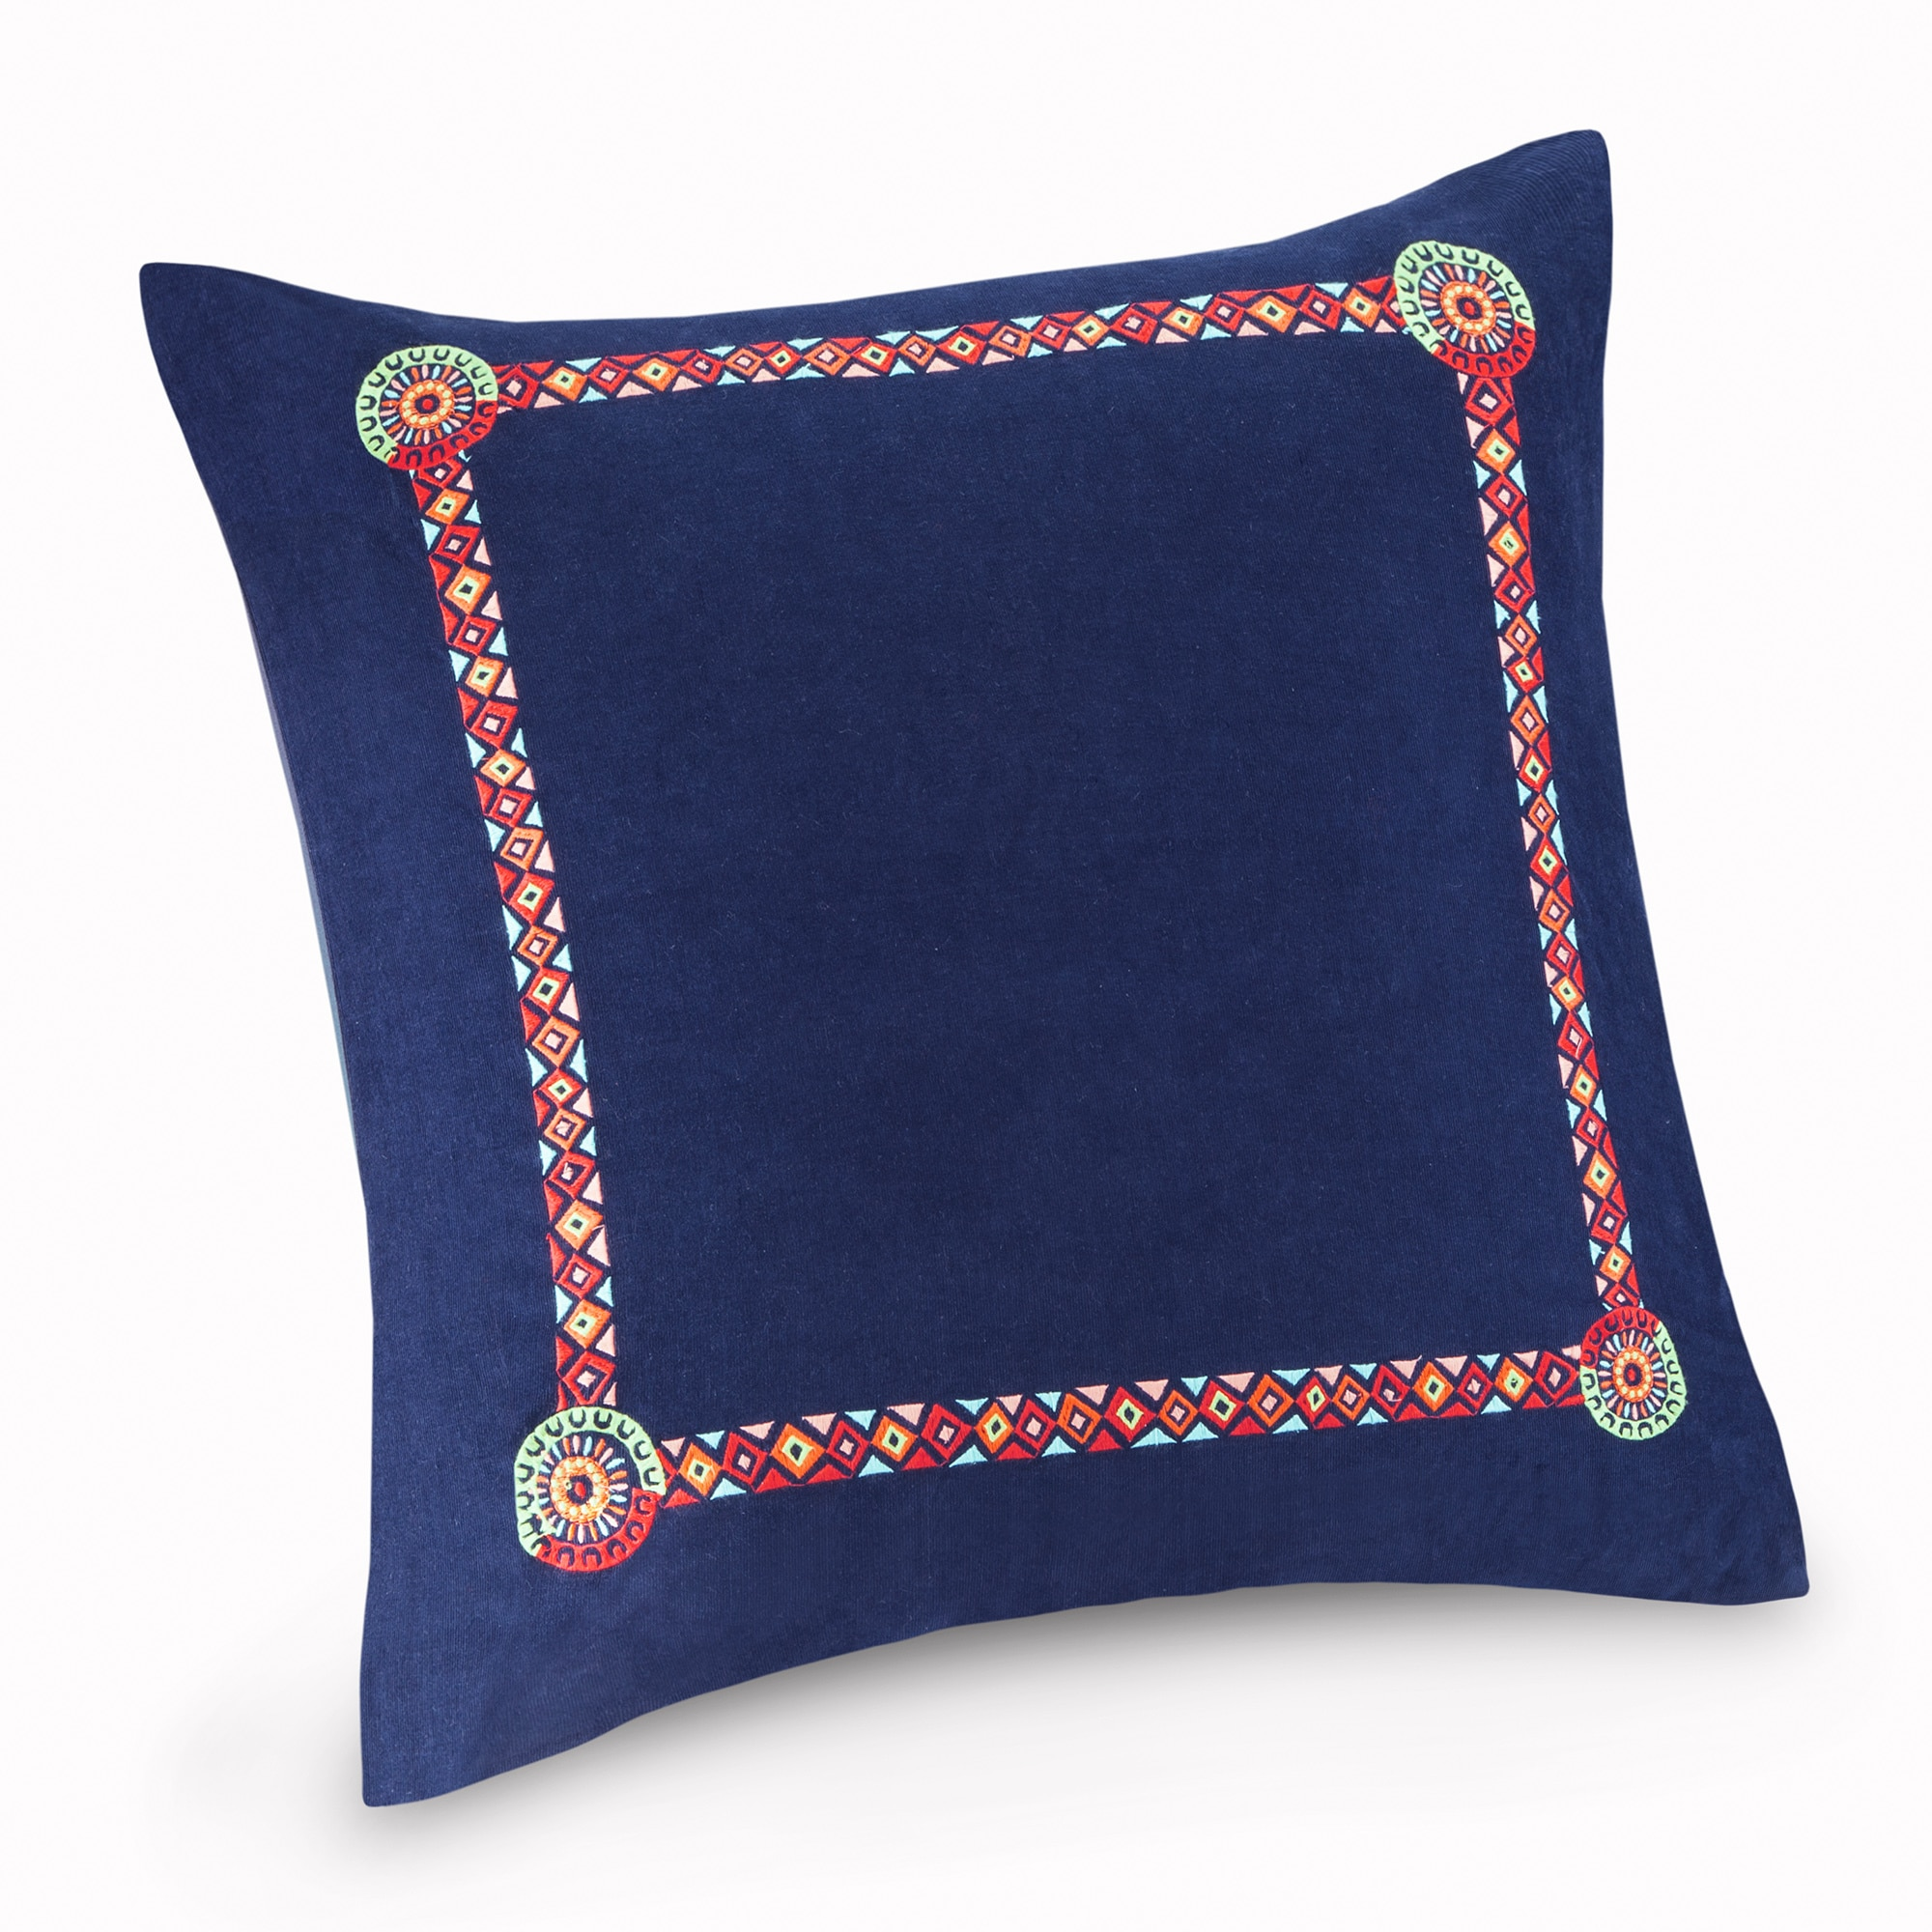 Josie By Natori Hollywood Boho Blue Embroidered Cotton 26 X 26 Inch Euro Sham With Hidden Zipper Closure Overstock 11702262